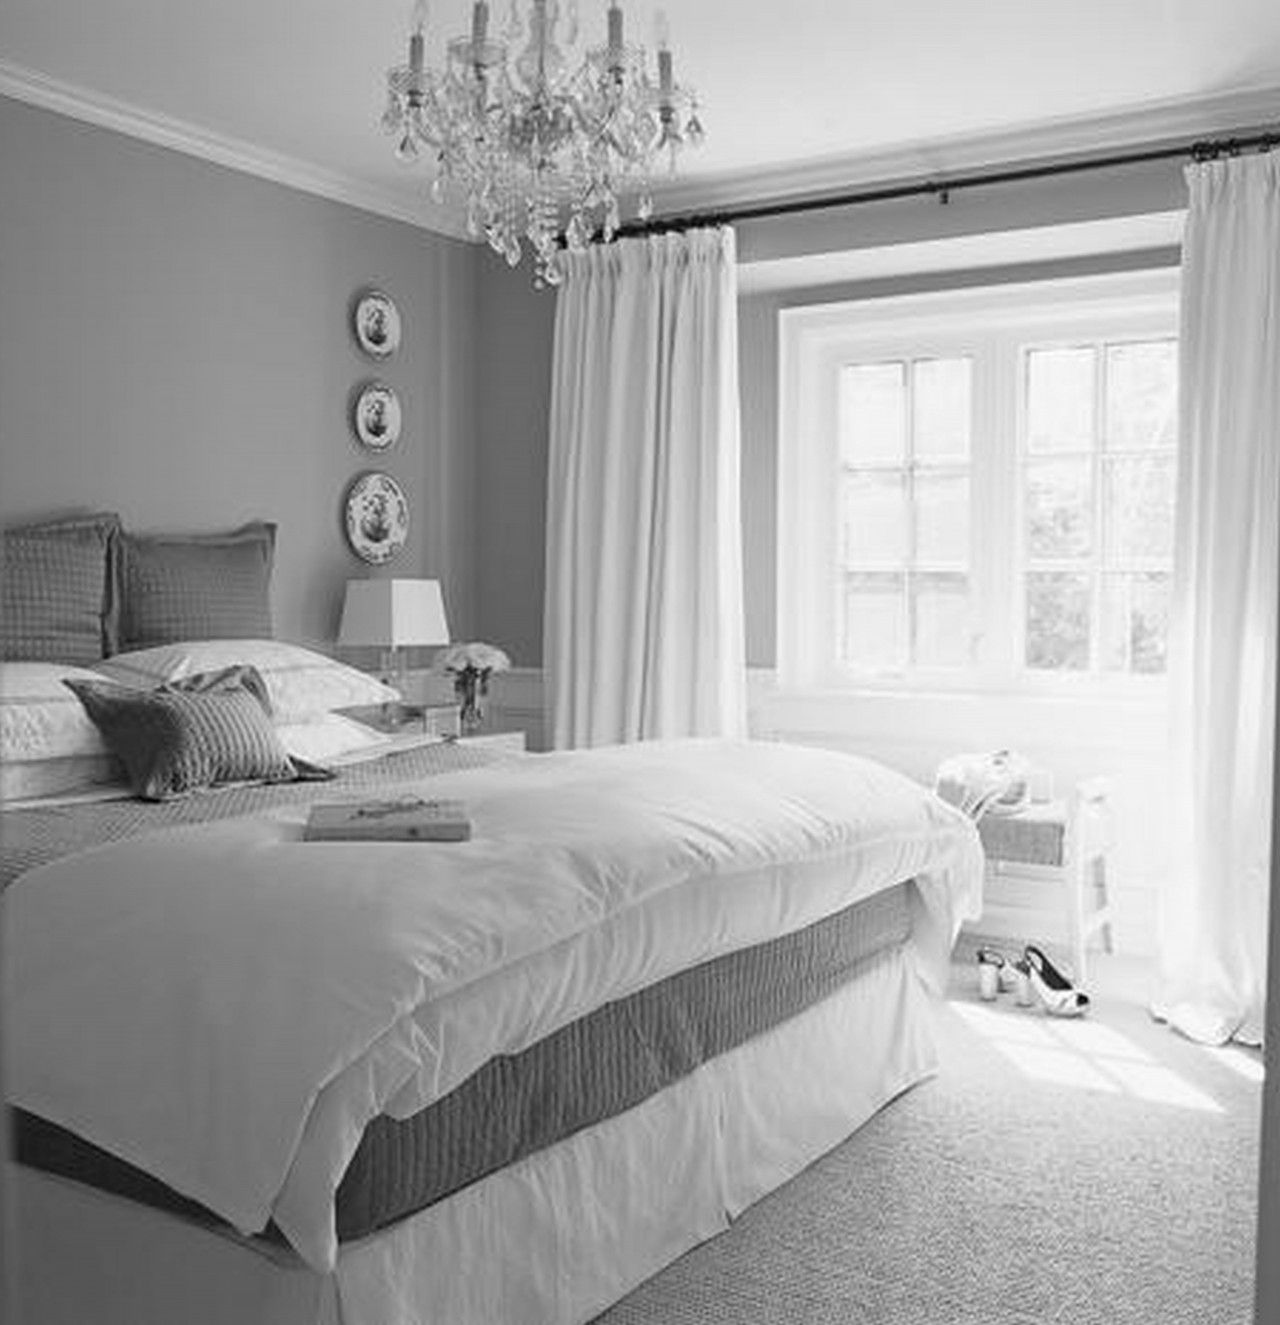 All white bedroom ikea - Agreeable Teenage Bedroom Ideas Complexion Entrancing Little Girls Bedroom Ideas Marvelous Decoration Coloration Bedroom Colors